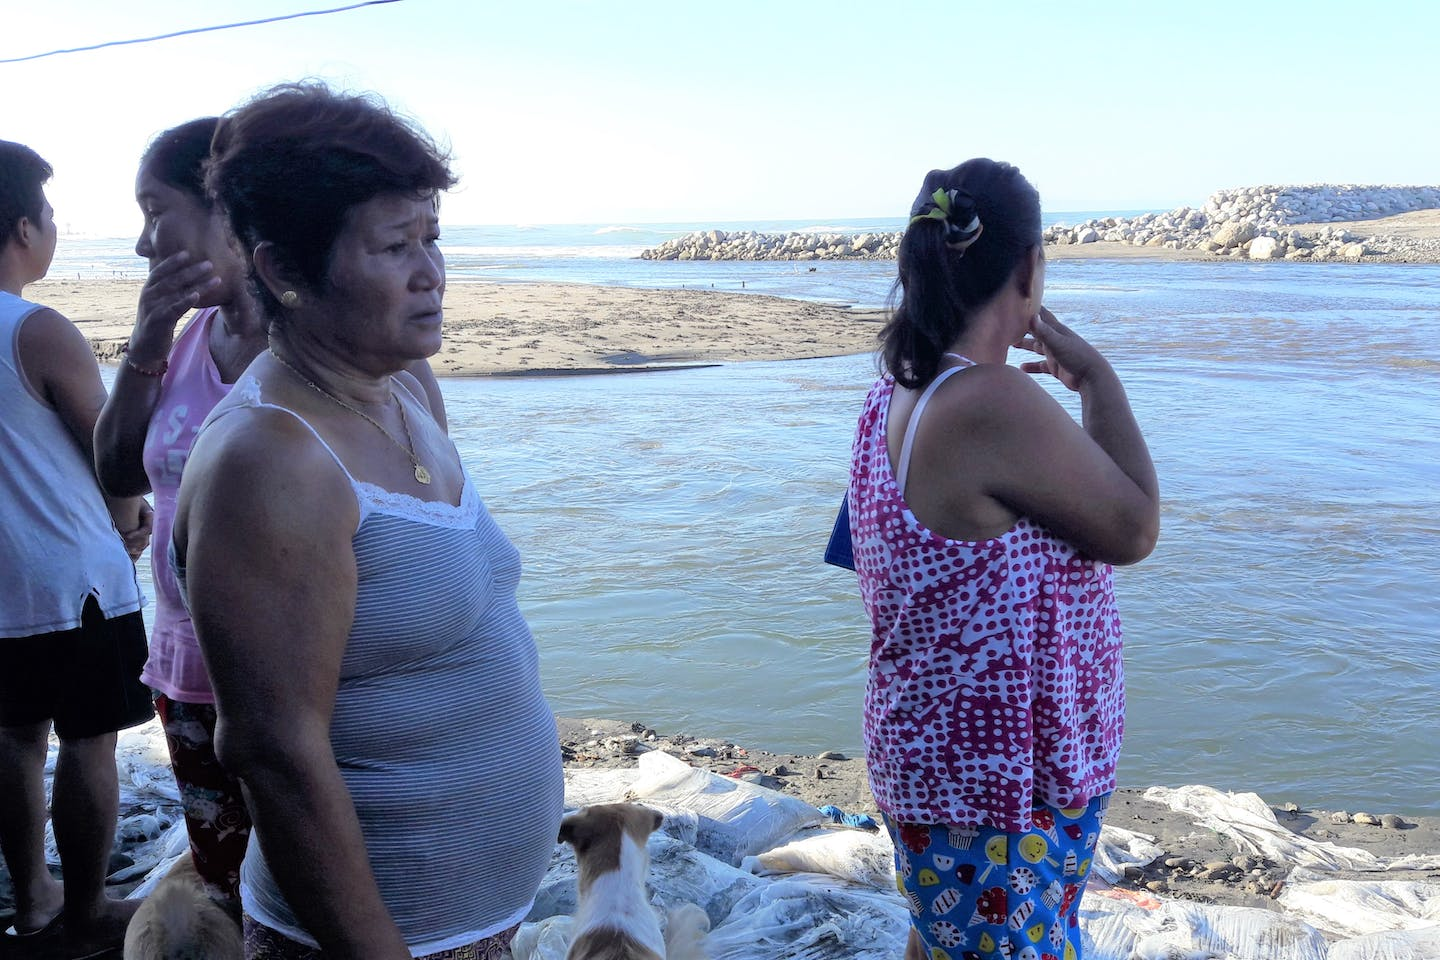 Alaska residents look out to sea